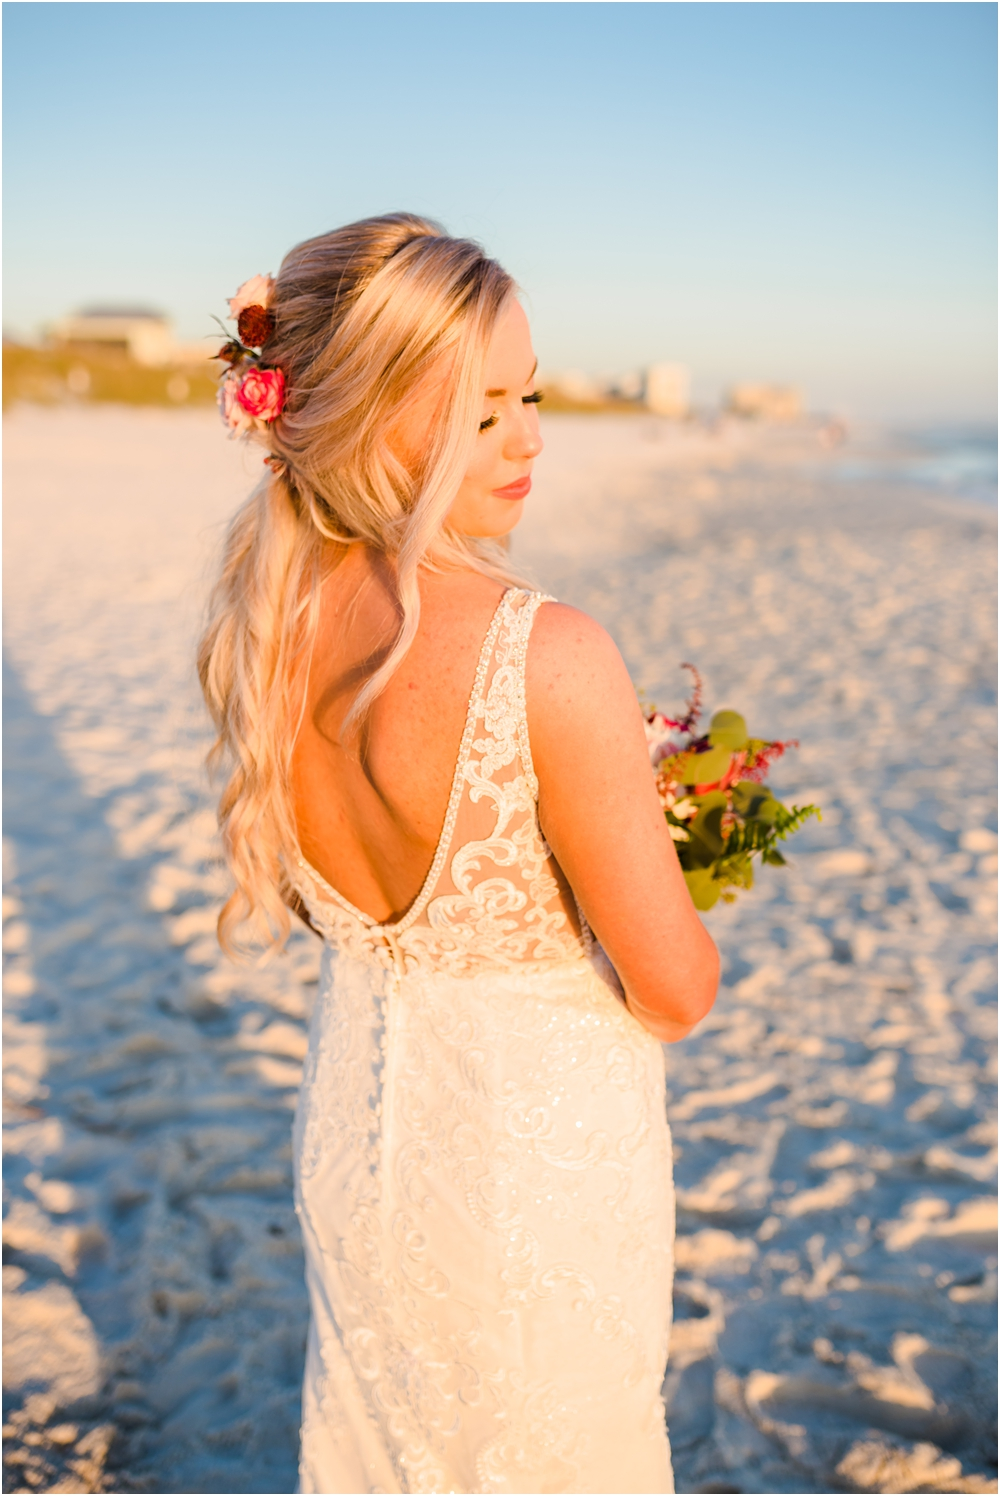 mcglothlin-wedding-kiersten-stevenson-photography-30a-panama-city-beach-dothan-tallahassee-(101-of-145).jpg